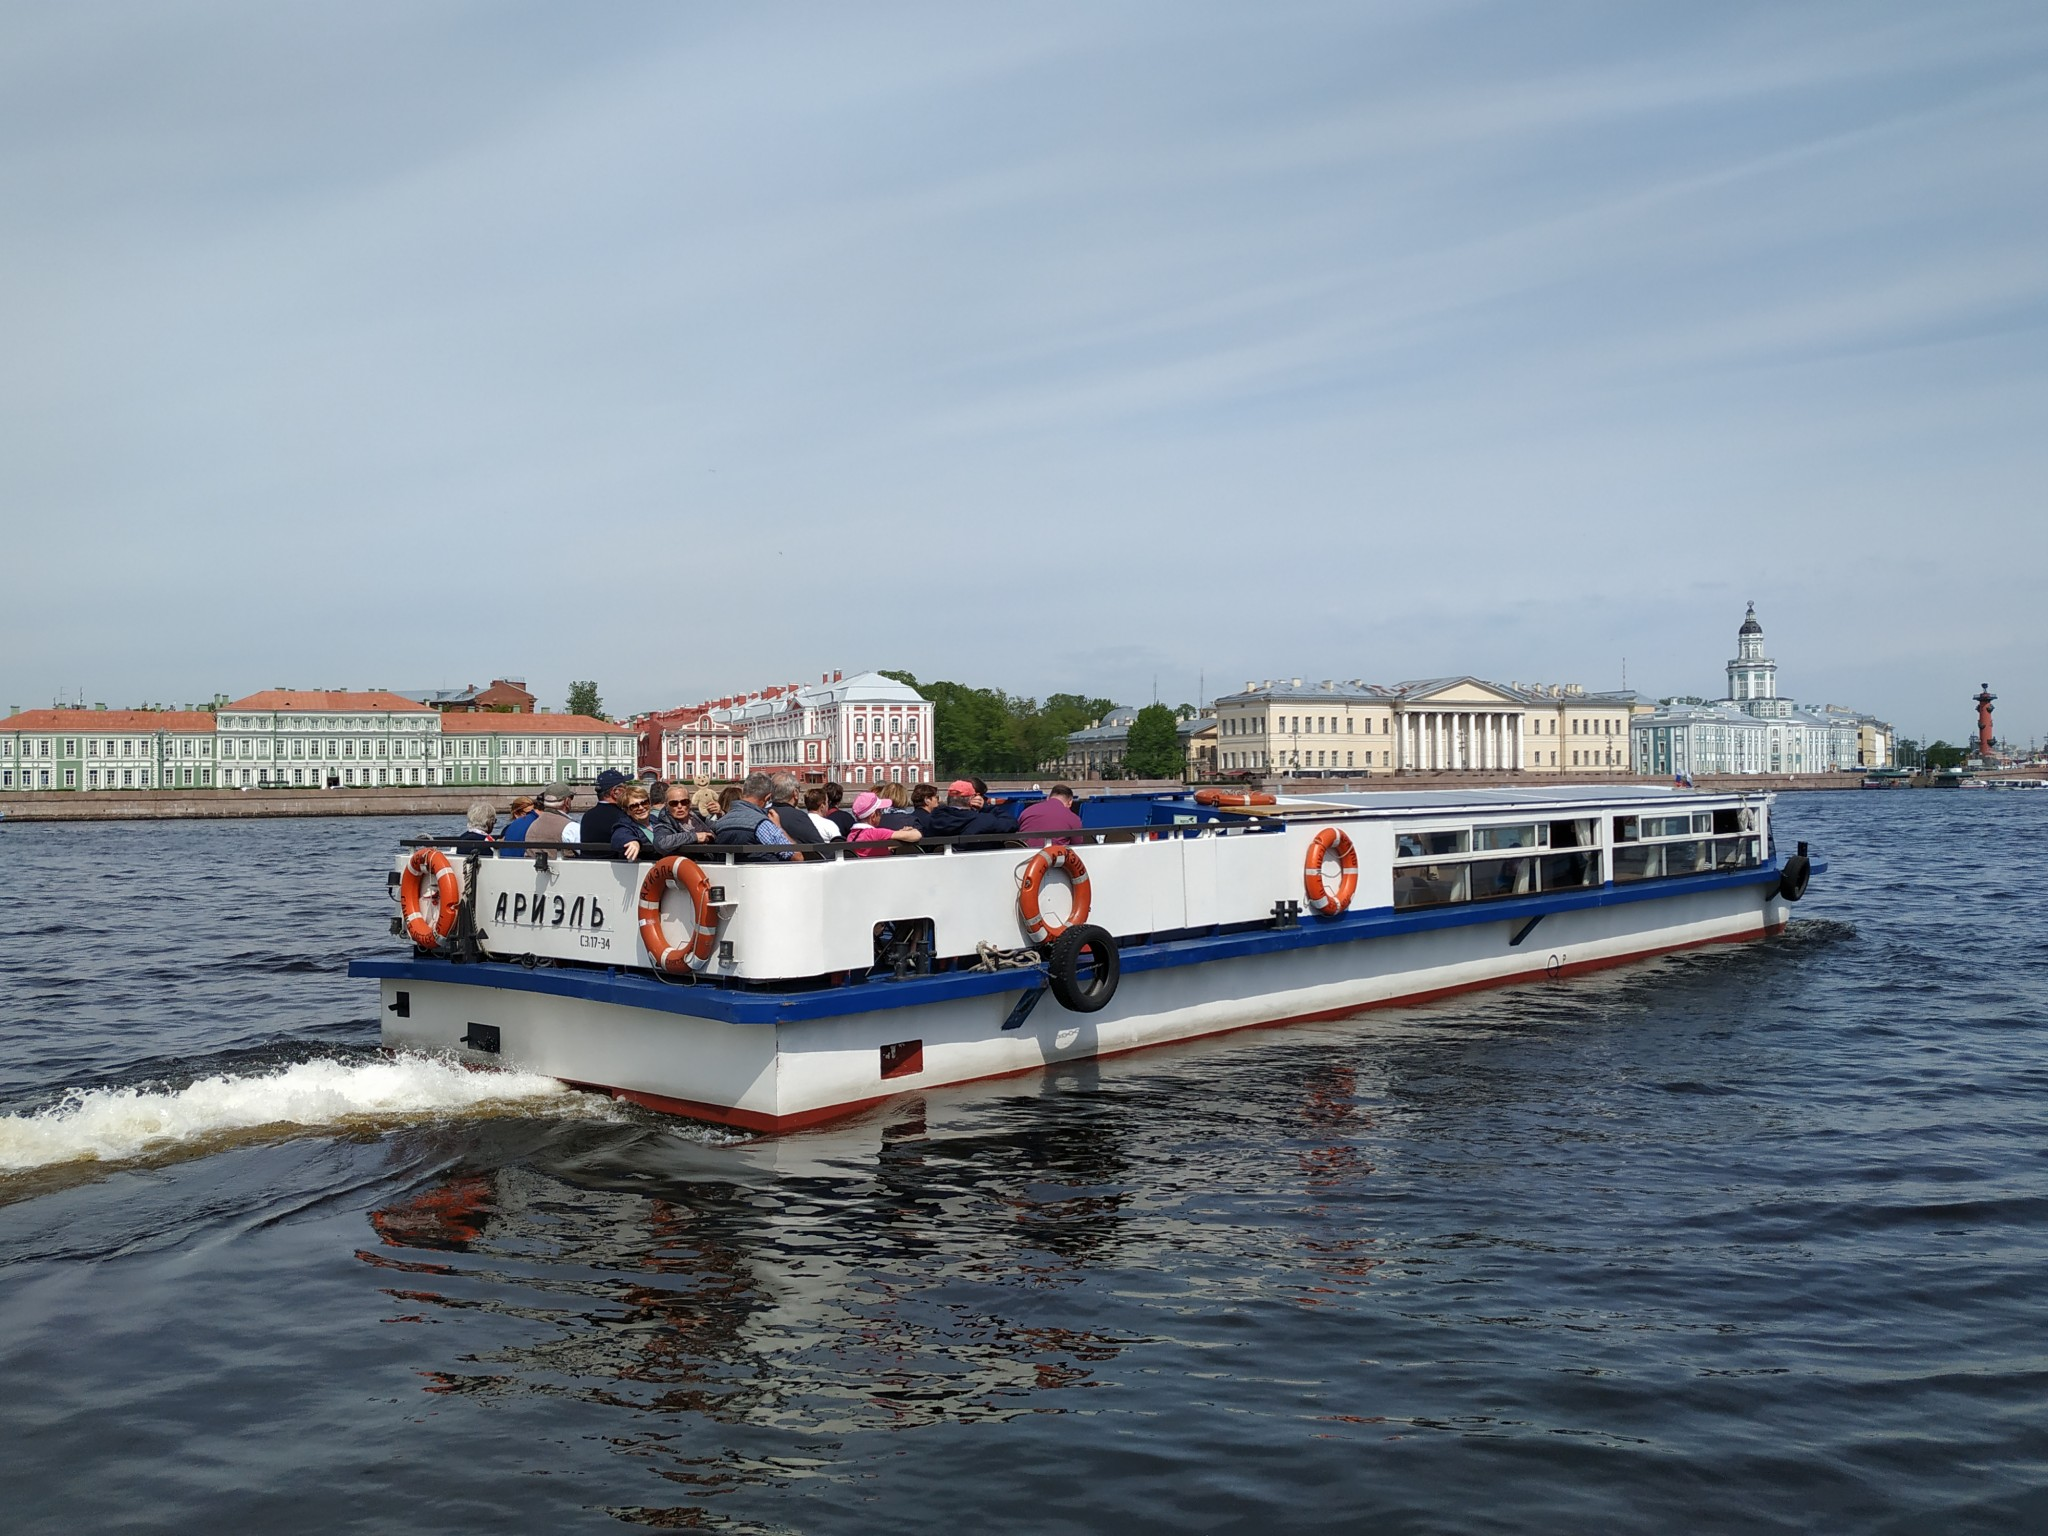 Petersbourg35